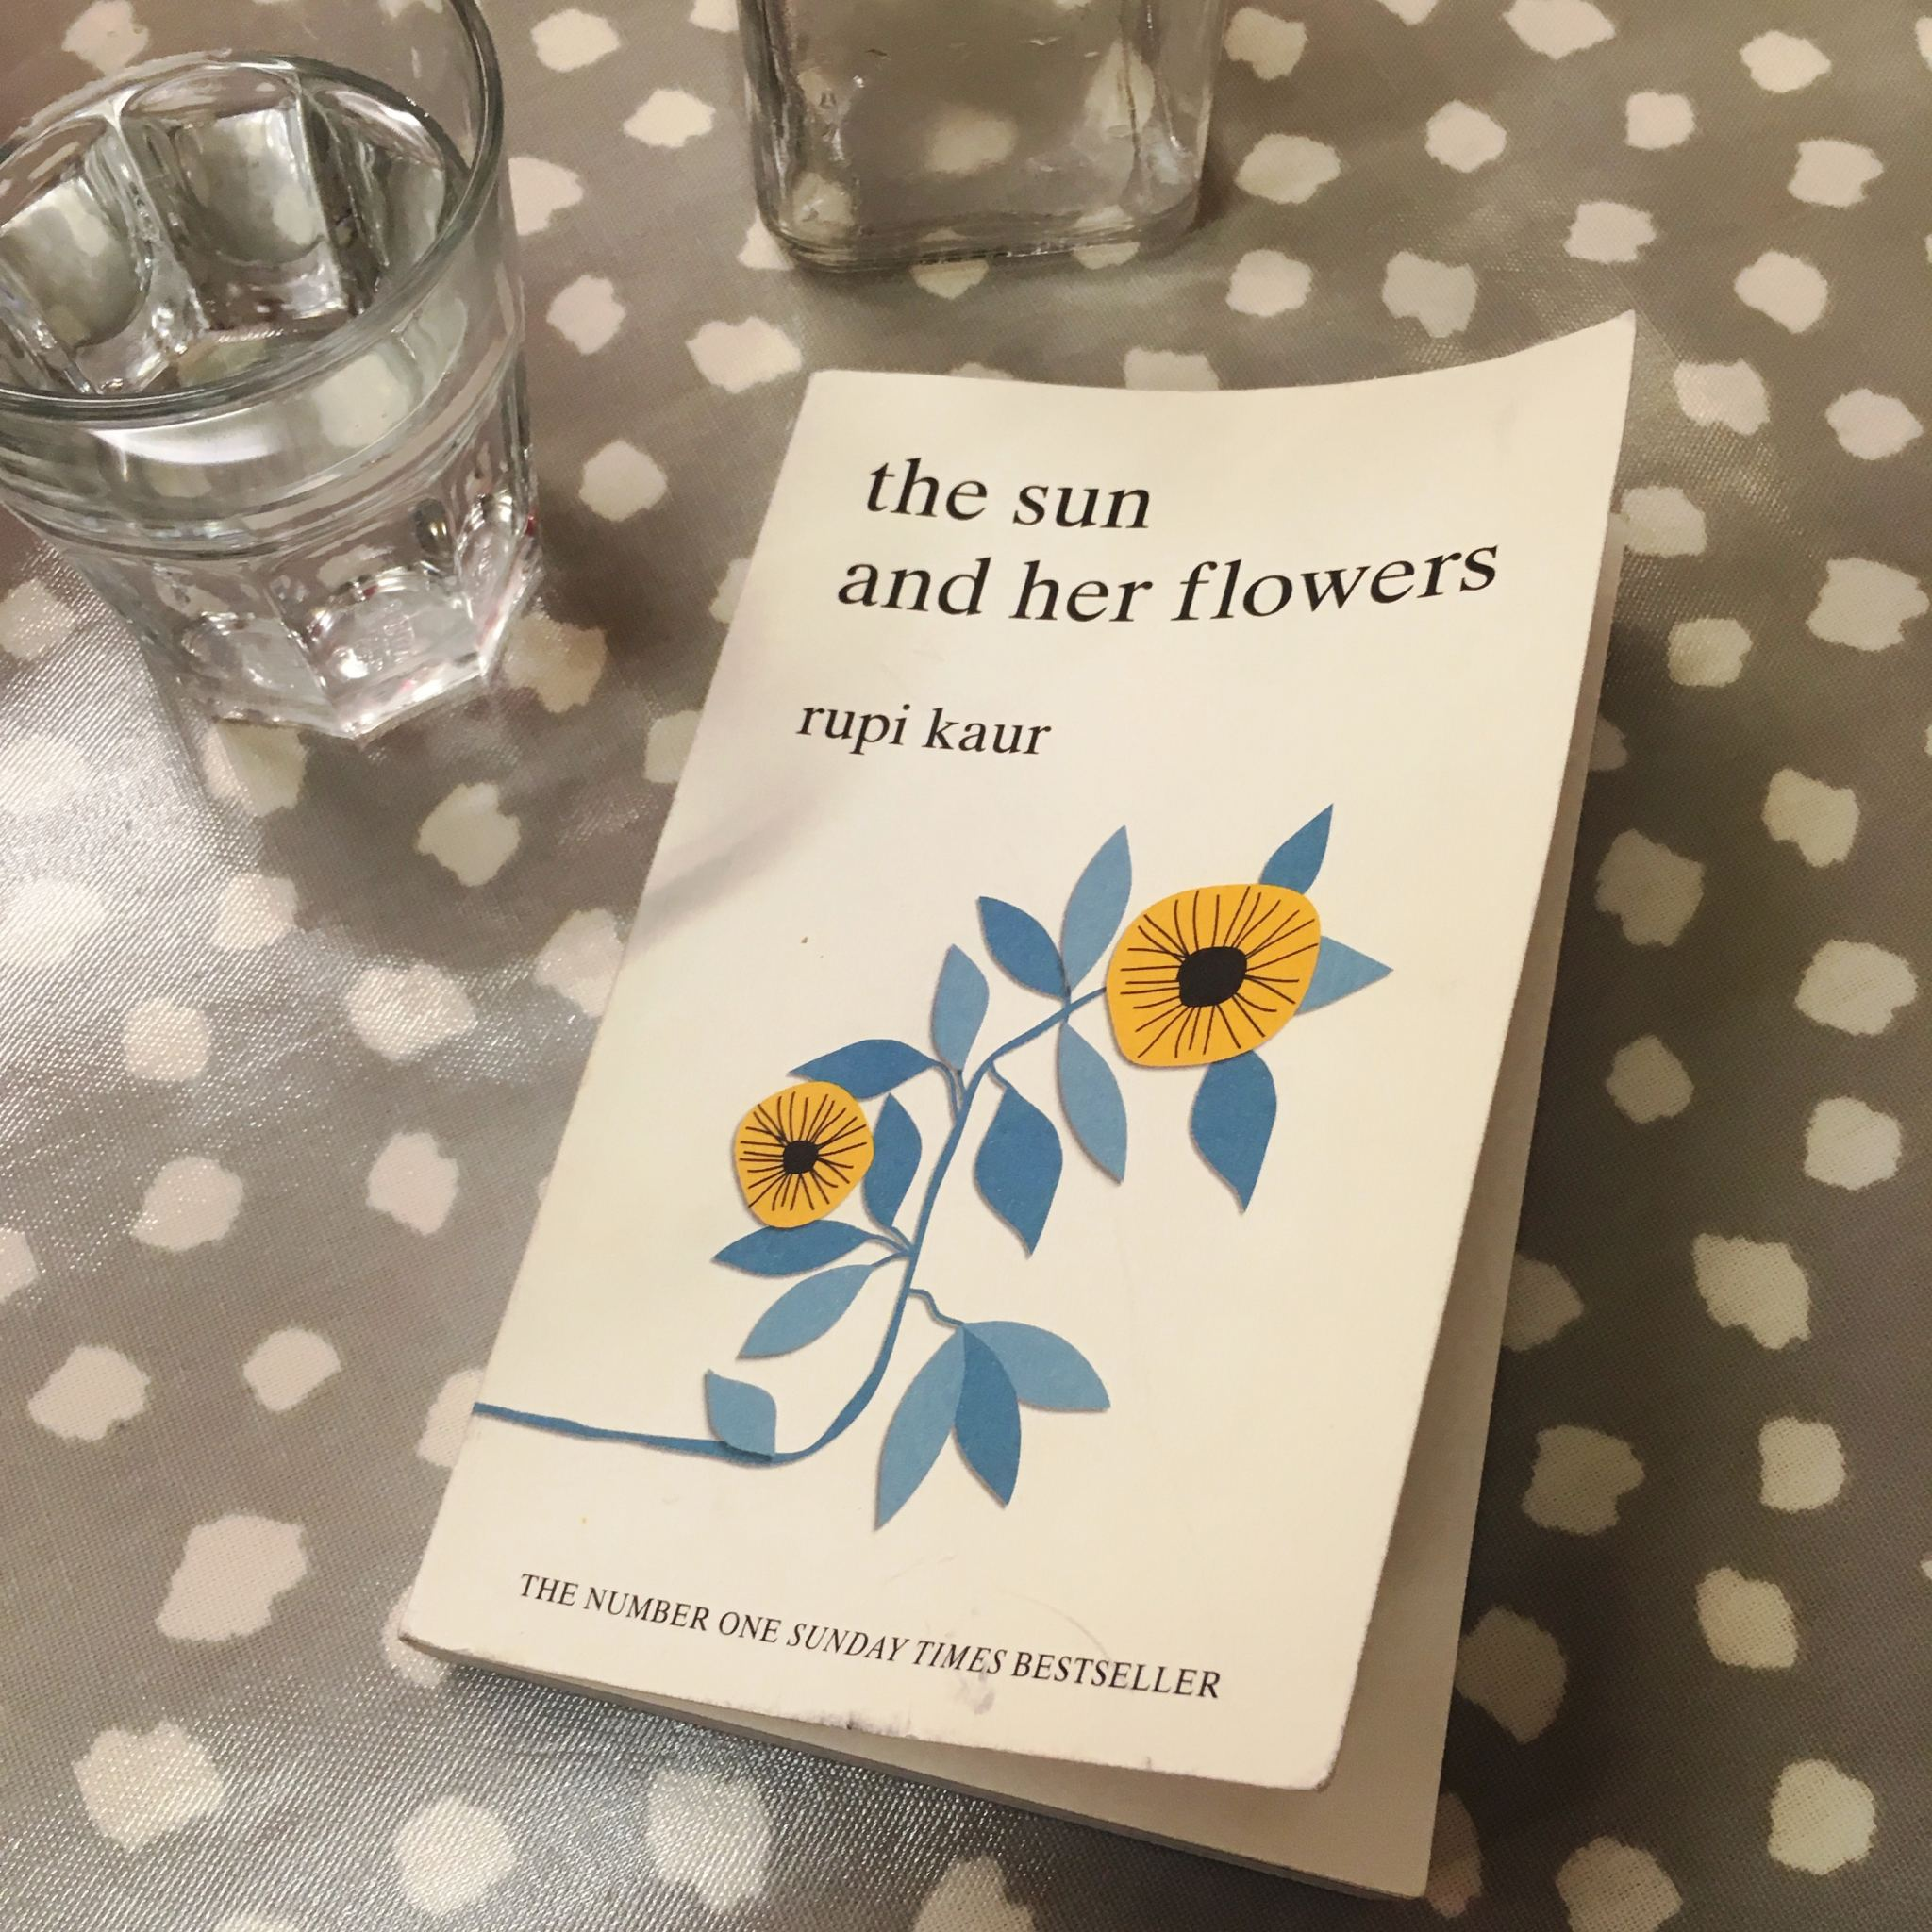 Launch of our Small Book Club: The Sun and Her Flowers